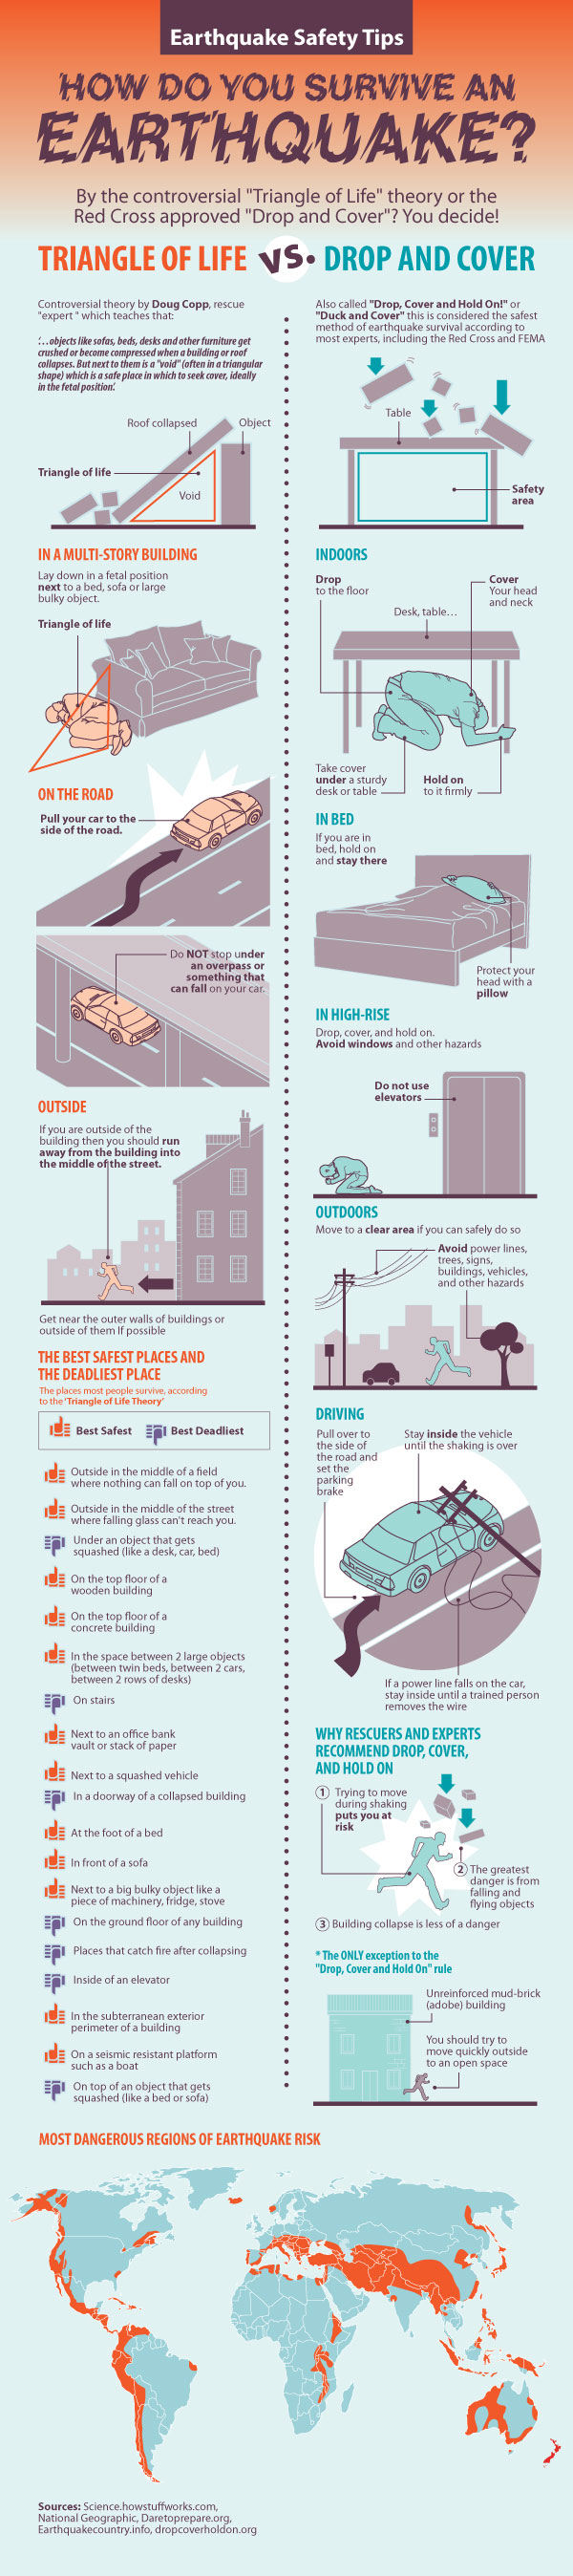 How Do You Survive An Earthquake?